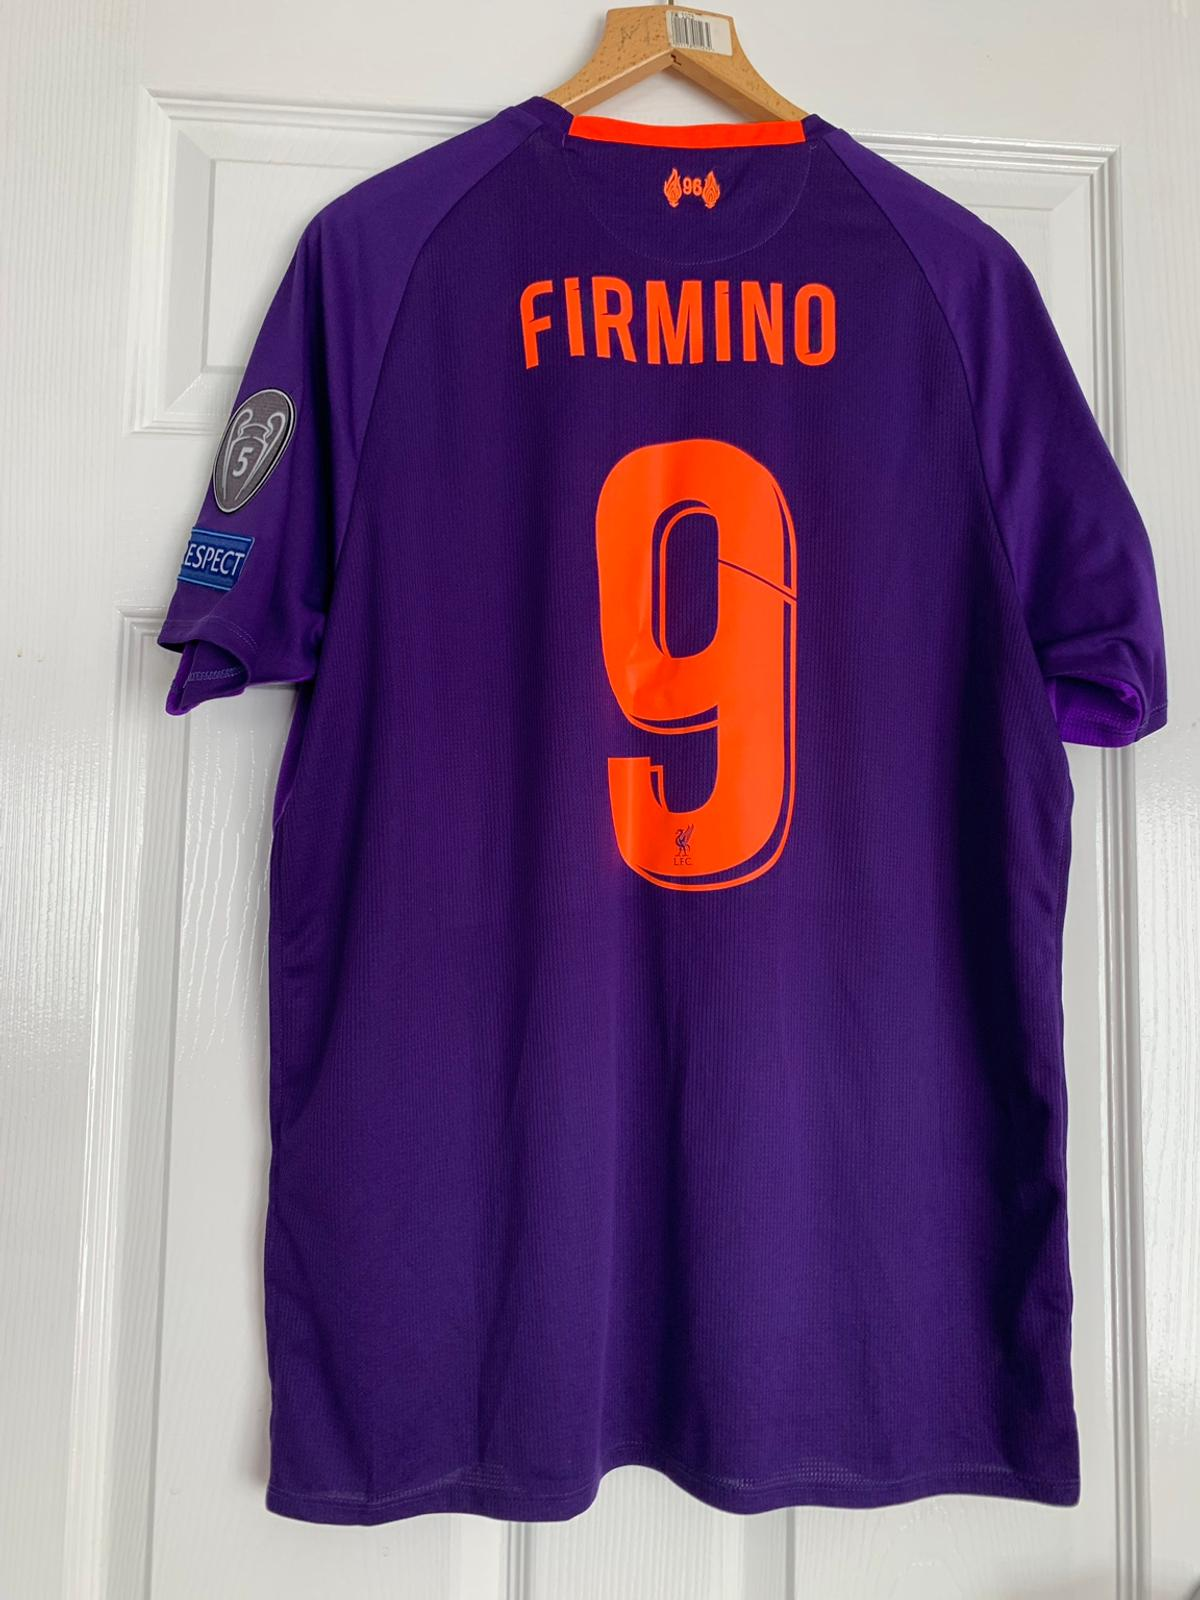 huge discount c1584 299d0 Liverpool Champions league shirt XL Firmino